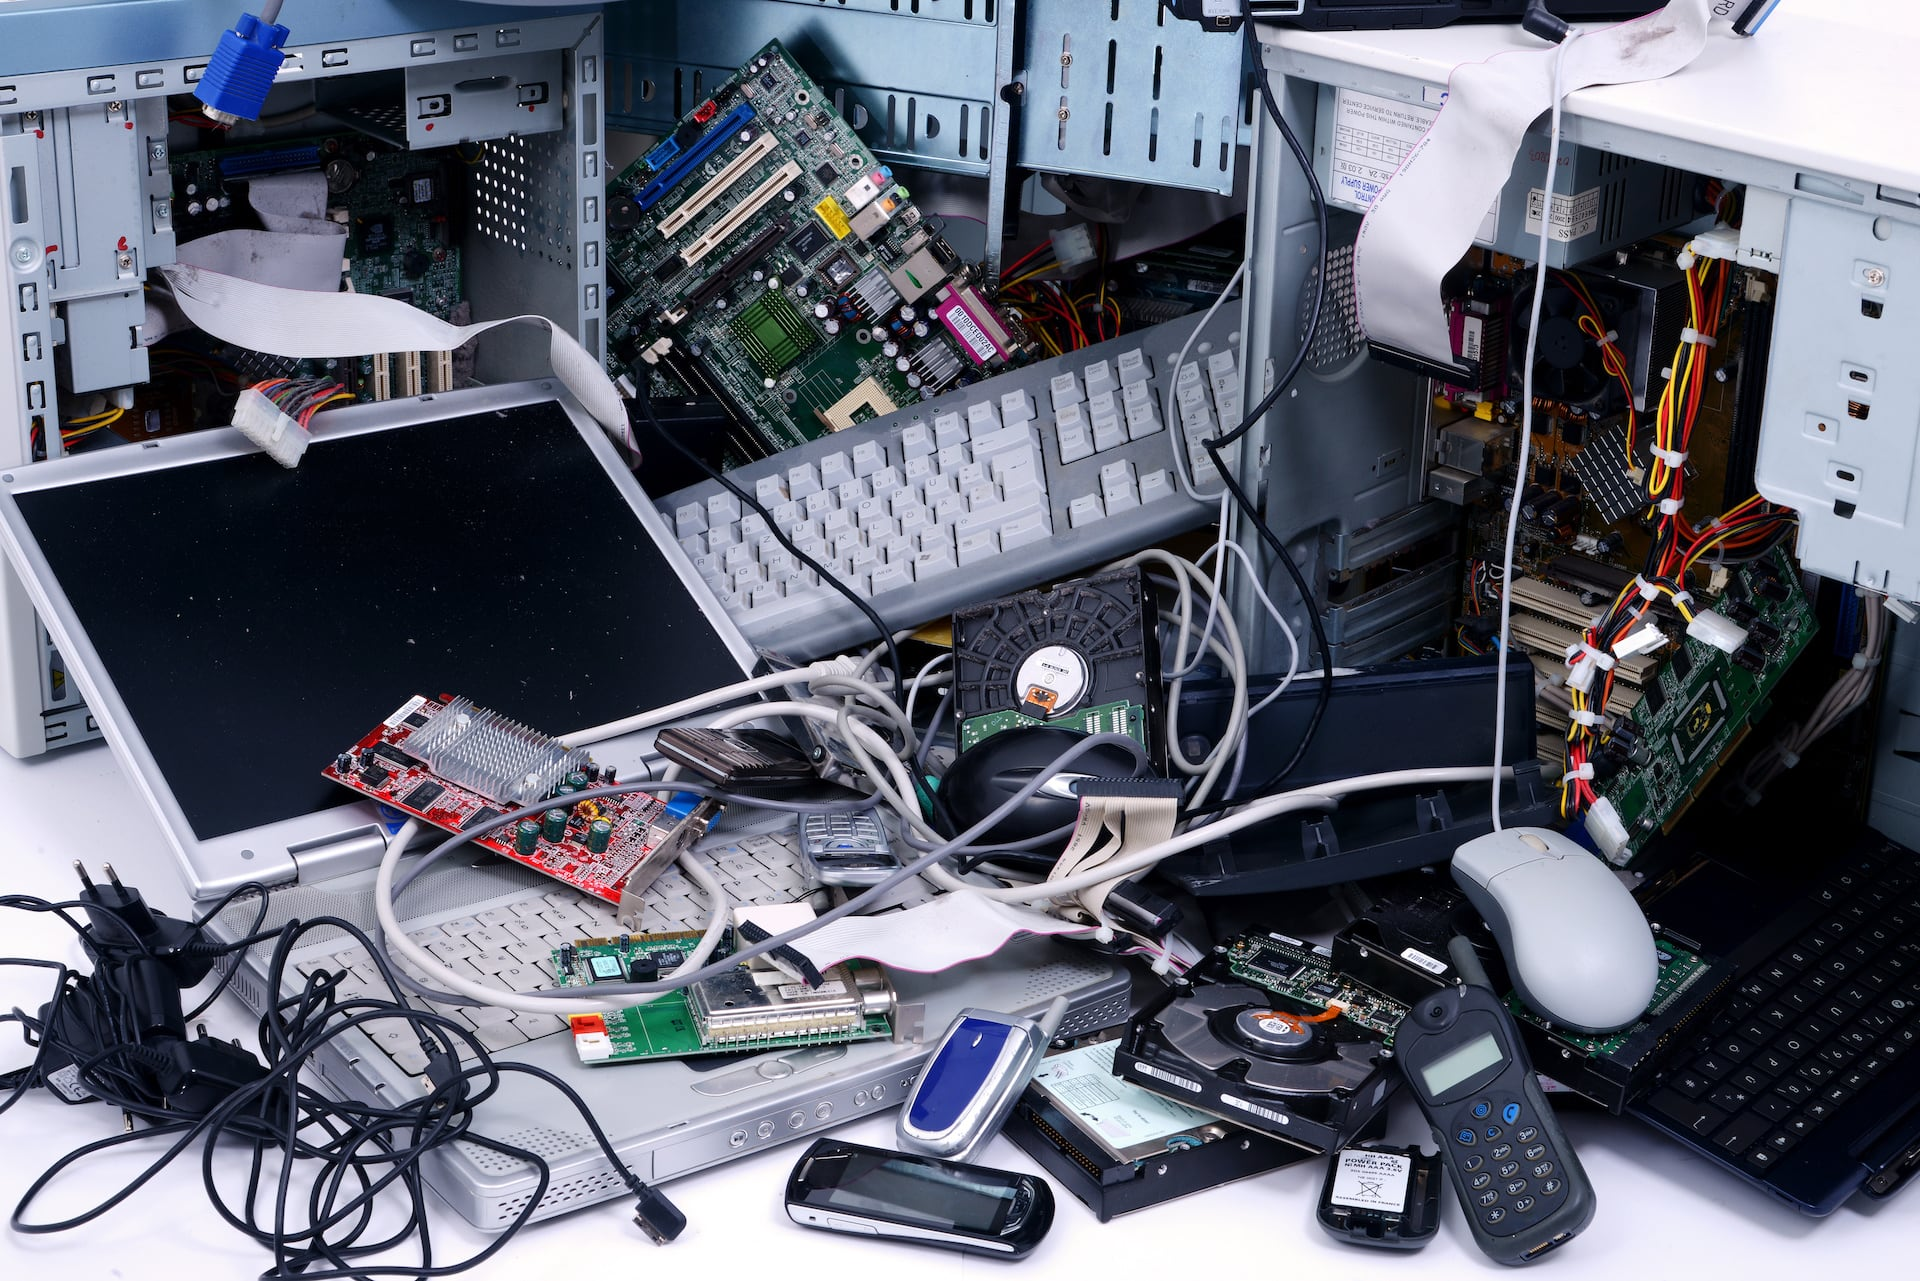 E-waste disposal for used electronic devices